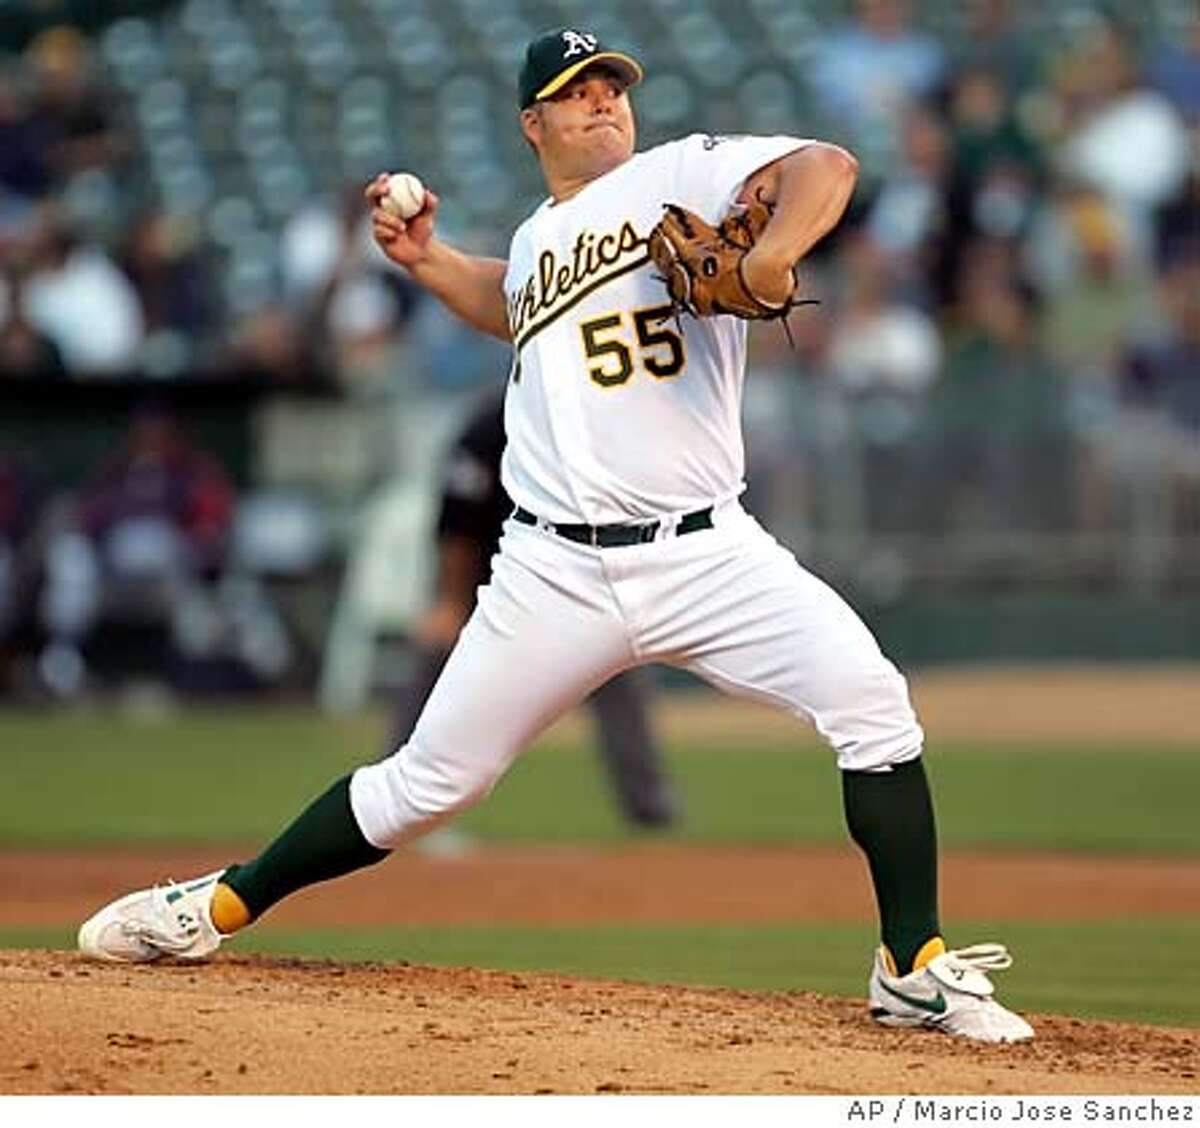 Oakland Athletics starter Joe Blanton throws to the Cleveland Indians in the third inning on Tuesday, July 26, 2005 in Oakland, Calif. (AP Photo/Marcio Jose Sanchez)